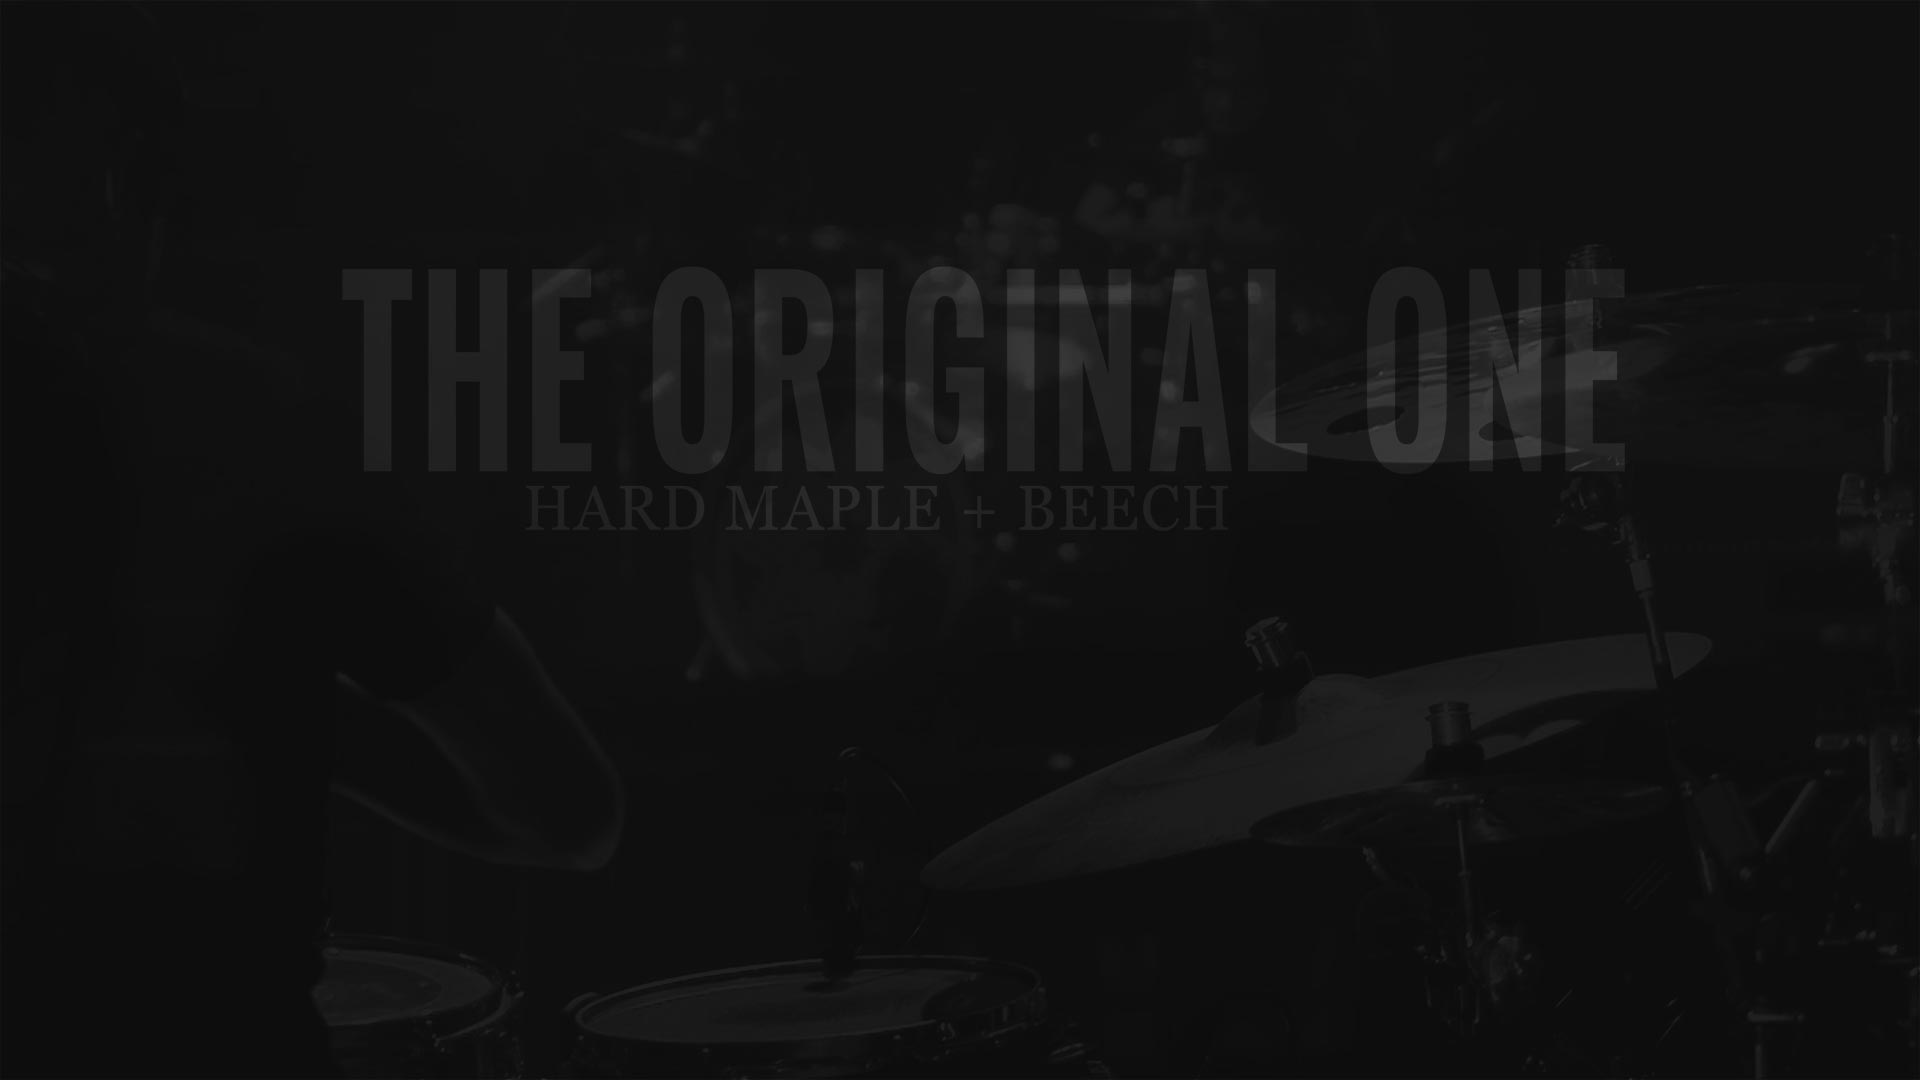 DSDRUM_RCS_HYBRID MAPLE